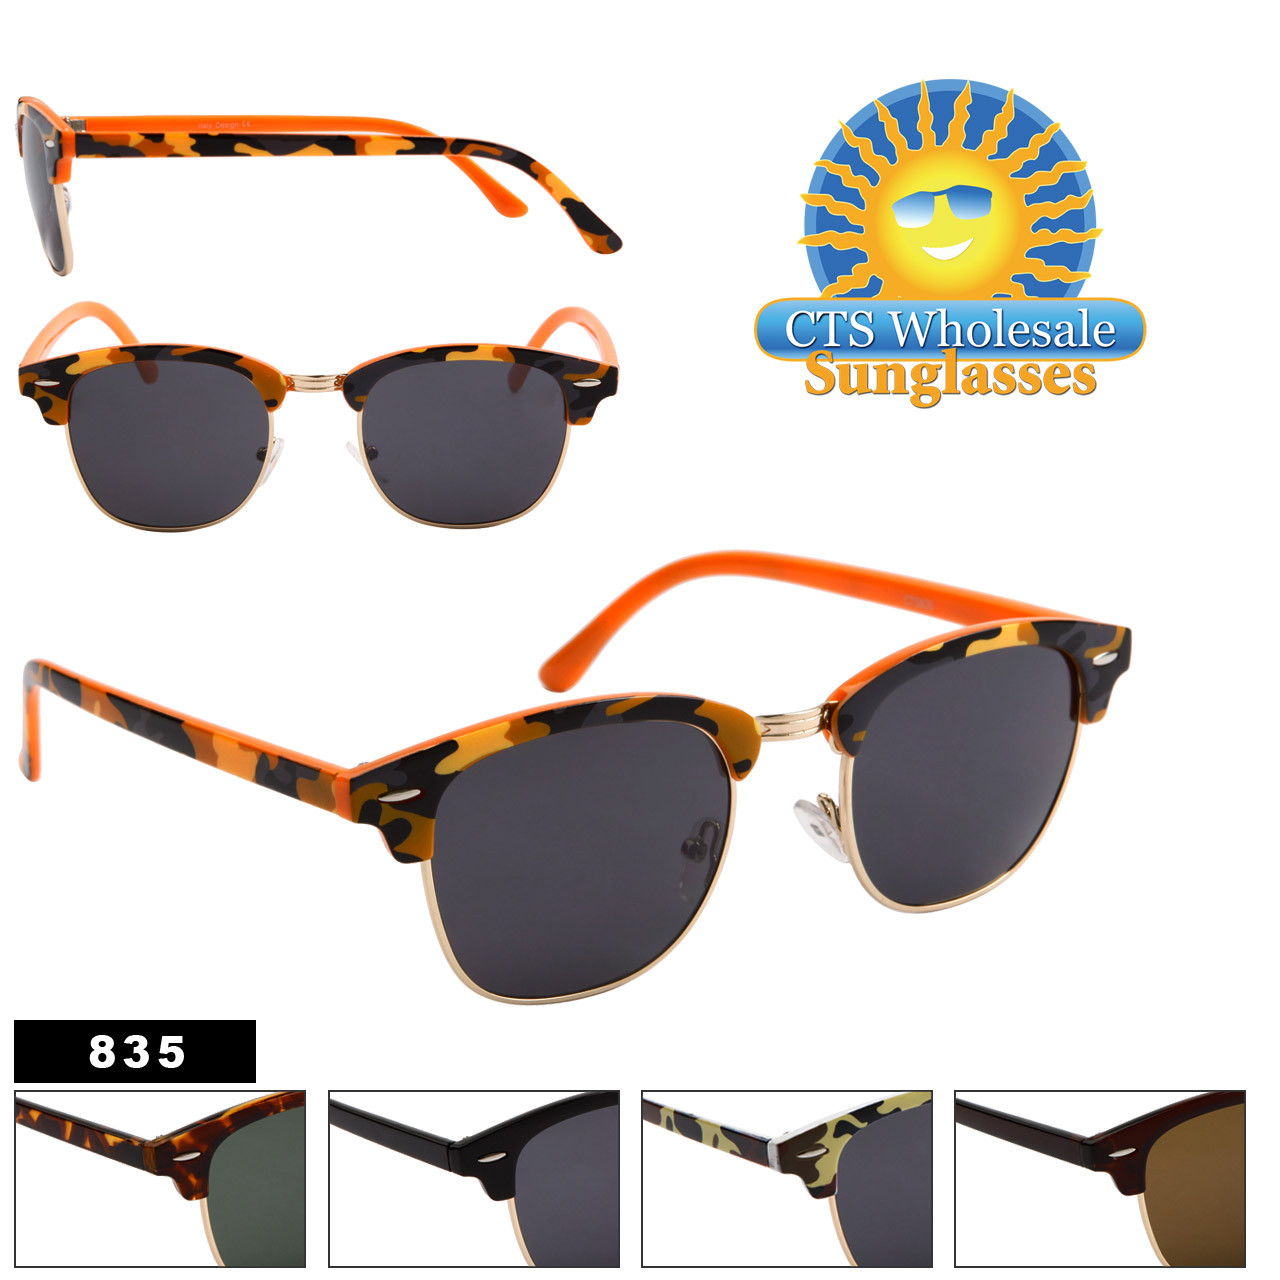 Wholesale Sunglasses by the Dozen - Style # 835